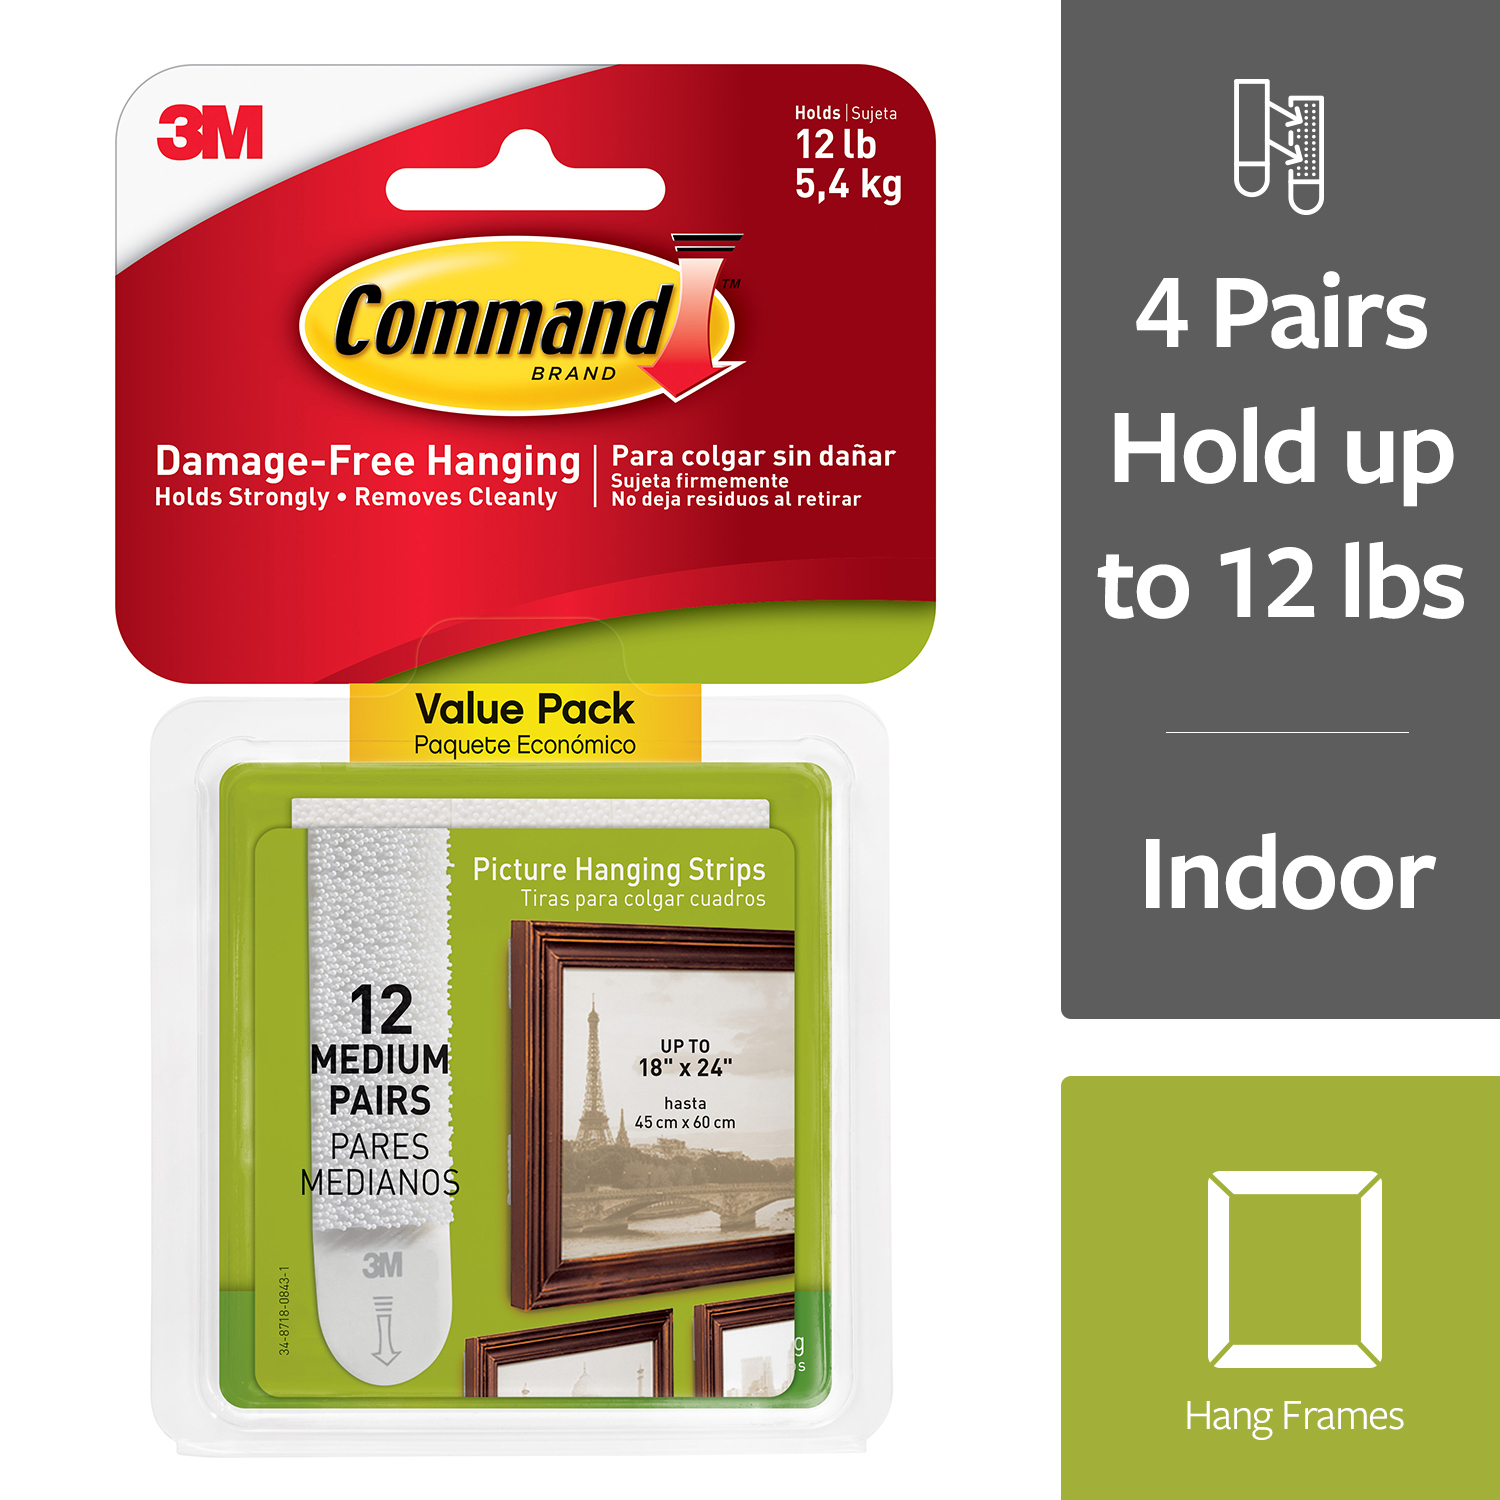 Command Damage-Free Medium Picture Hanging Strips, White, 4 pairs hold 12 pounds, Decorate without Tools, 12 Pairs (24 Strips), Hangs 3-6 frames (17204-12ES)